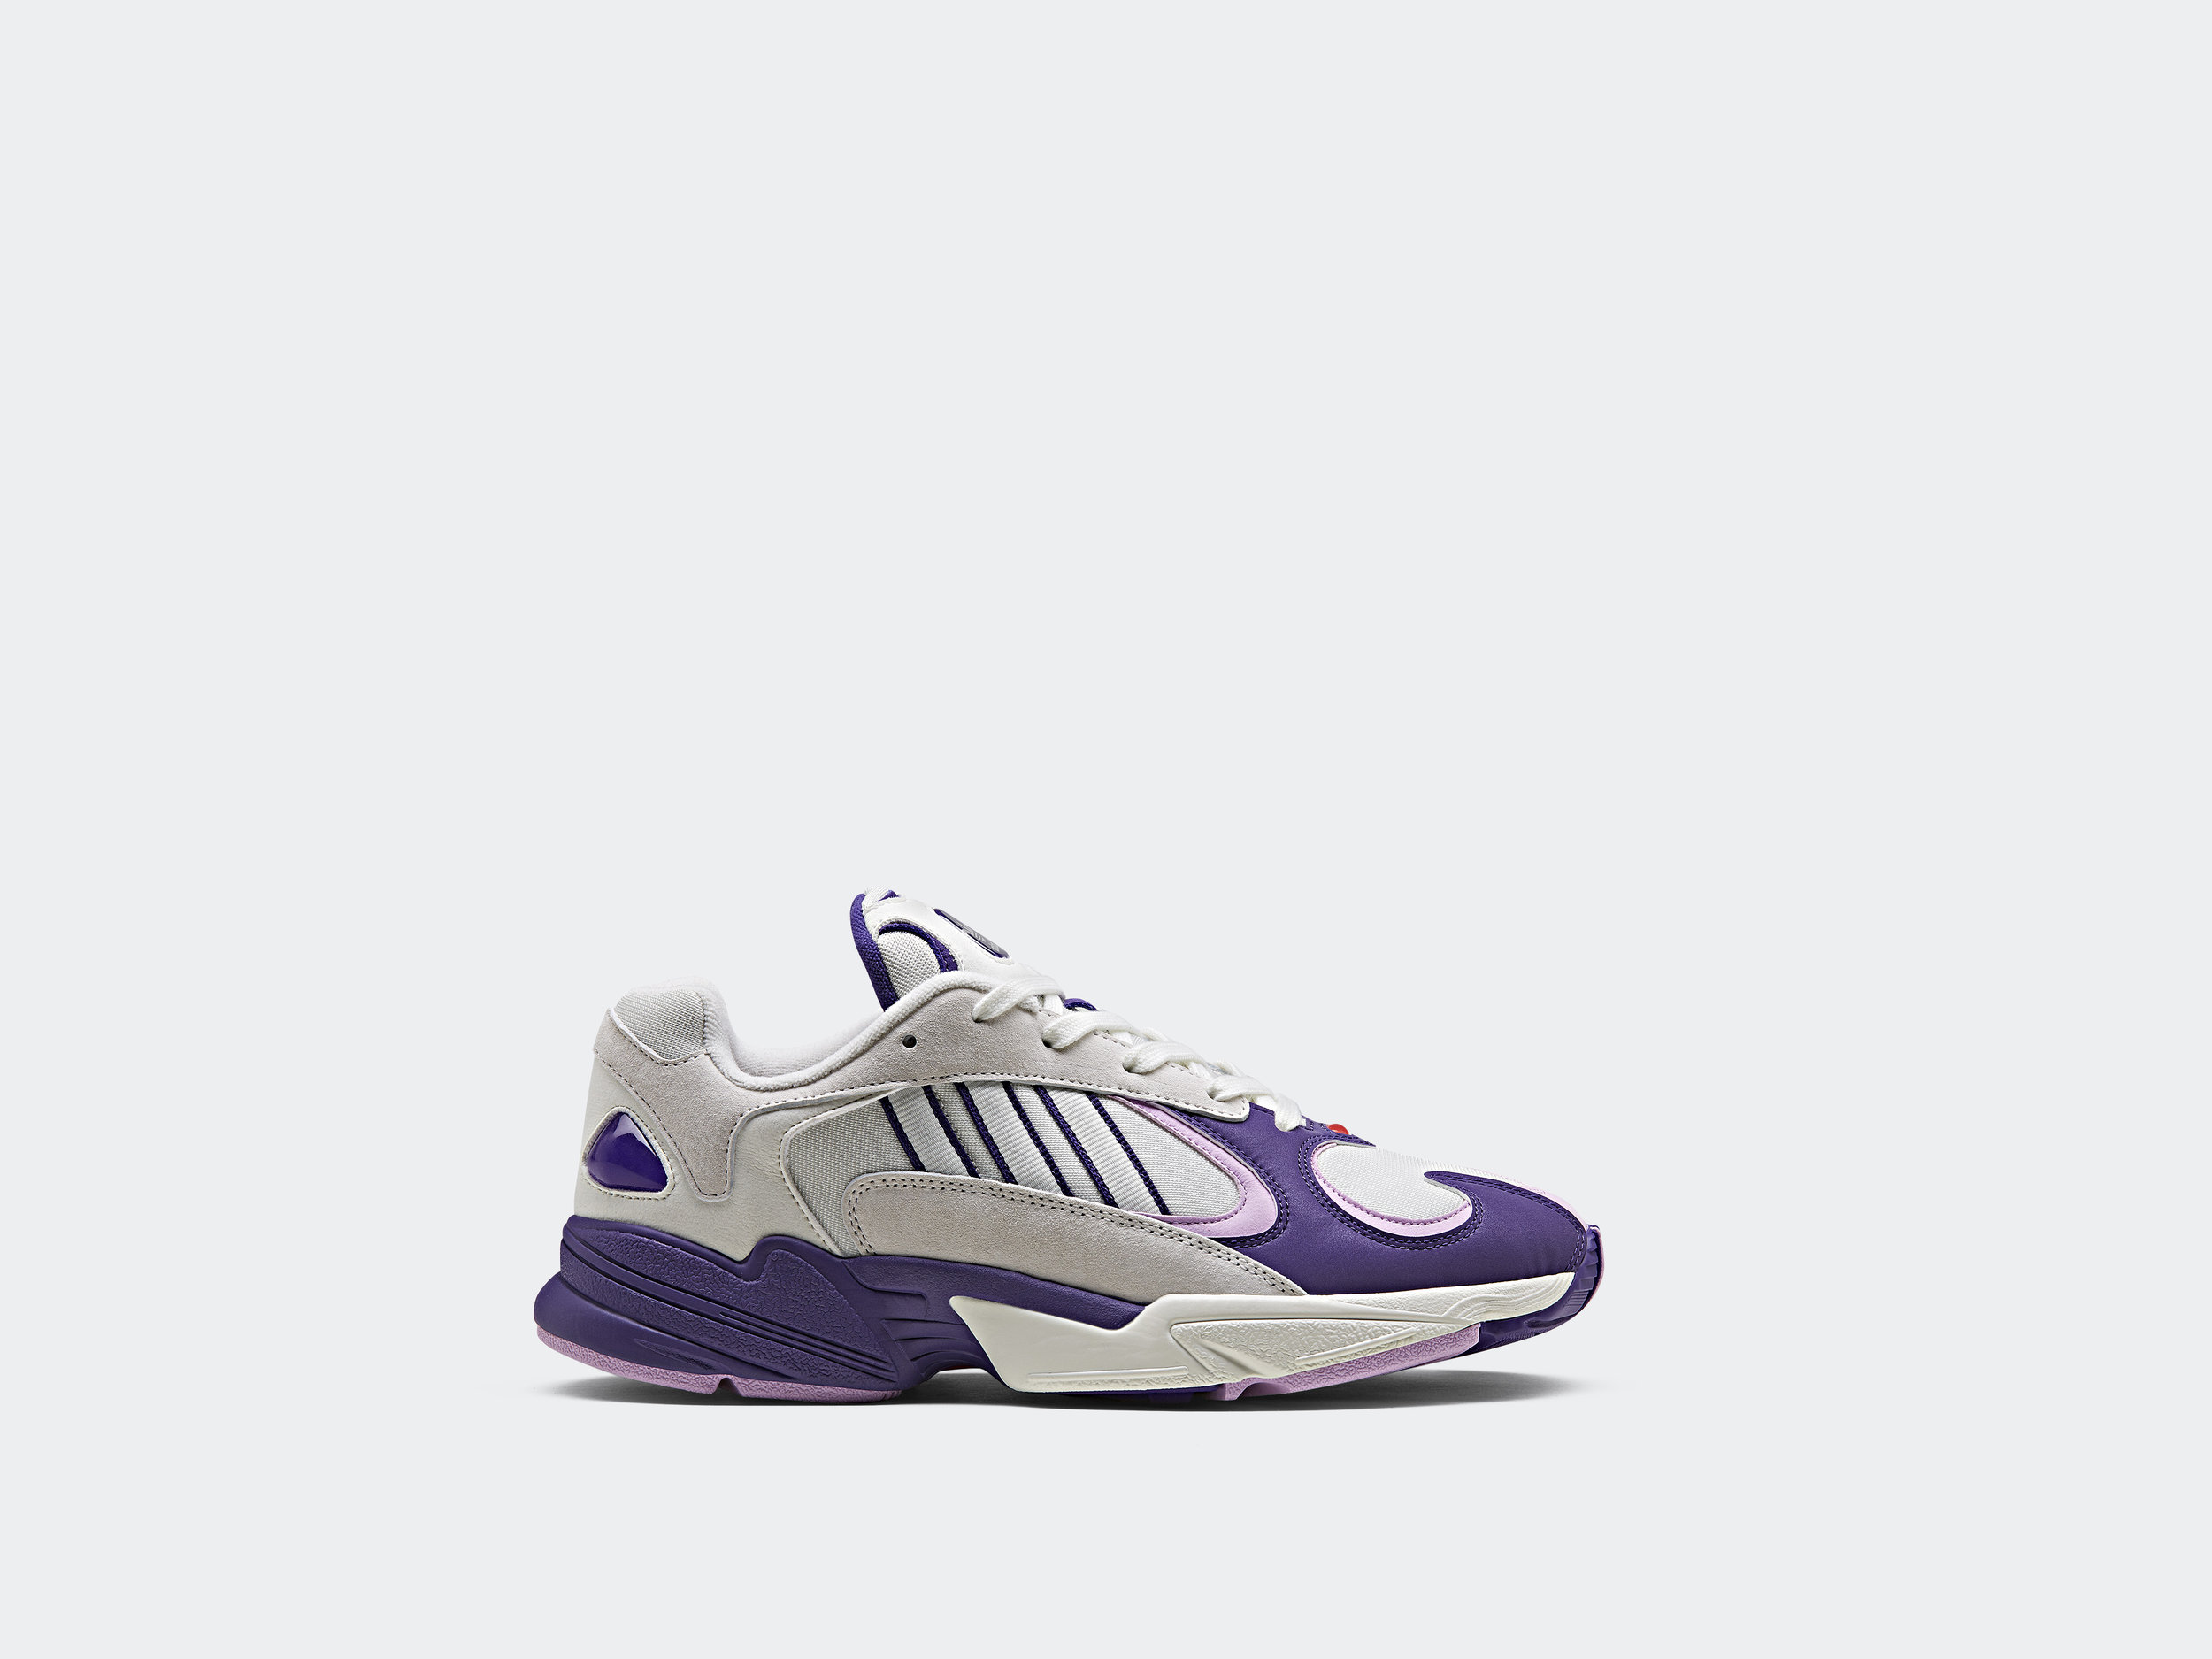 best website 4ddca 72772 Adidas Originals x Dragonball Z